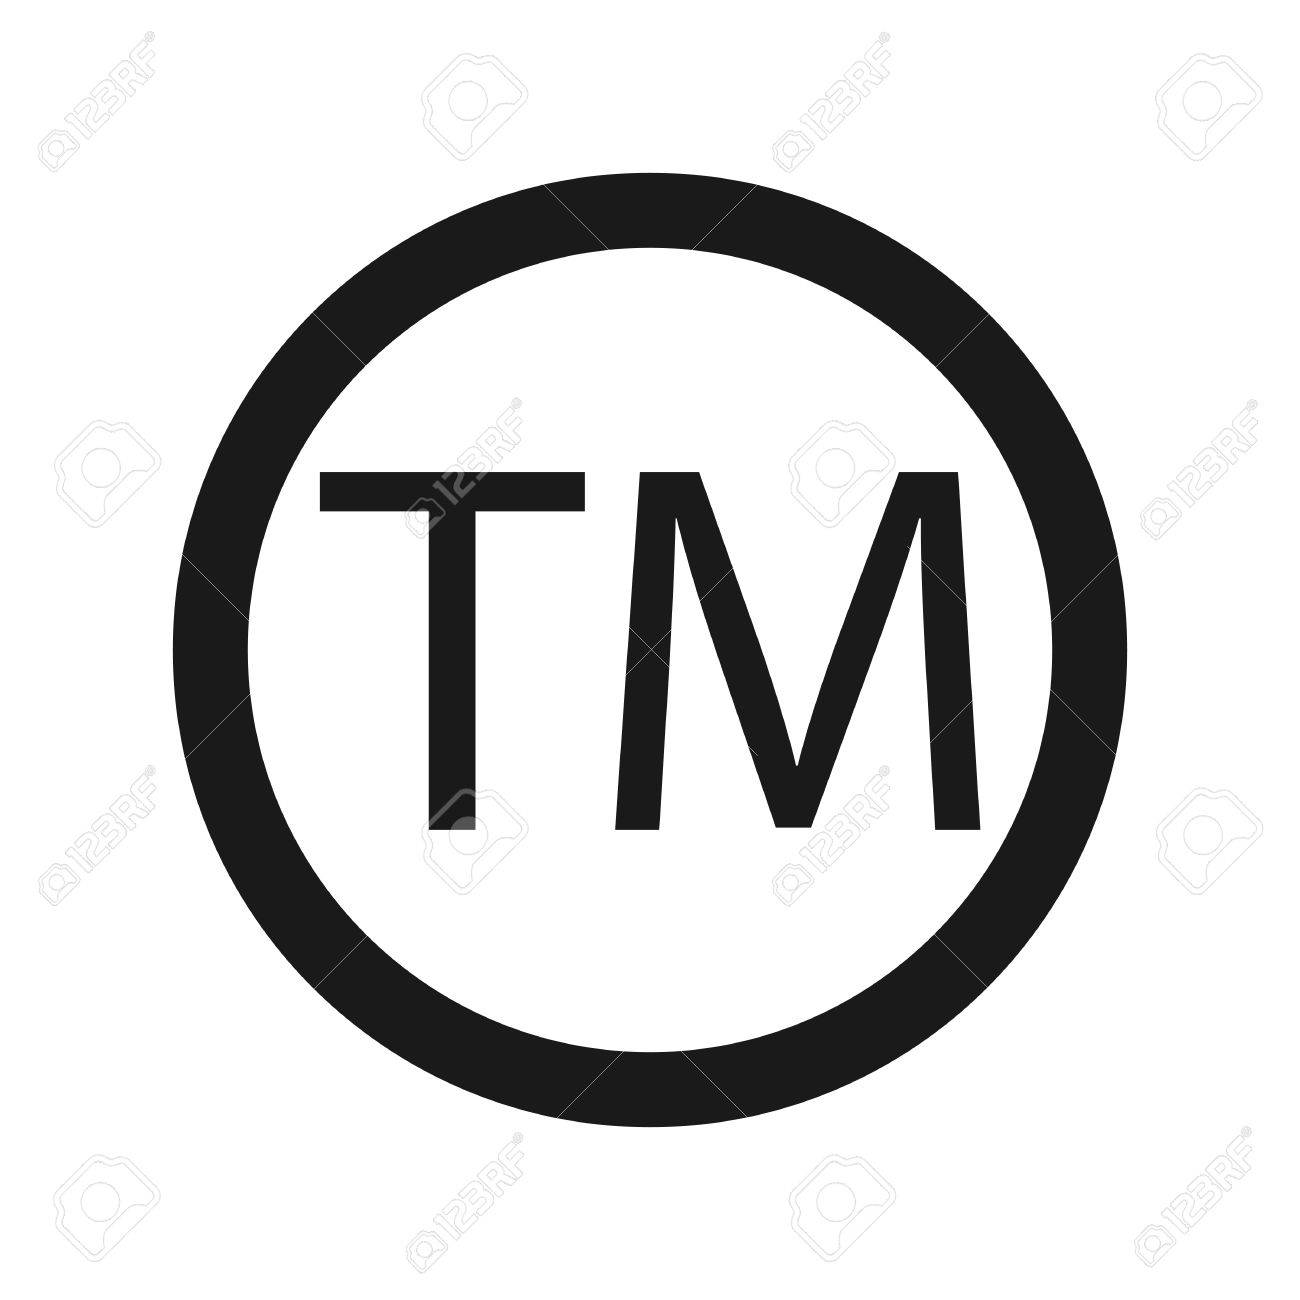 trademark symbol icon tm royalty free cliparts vectors and stock